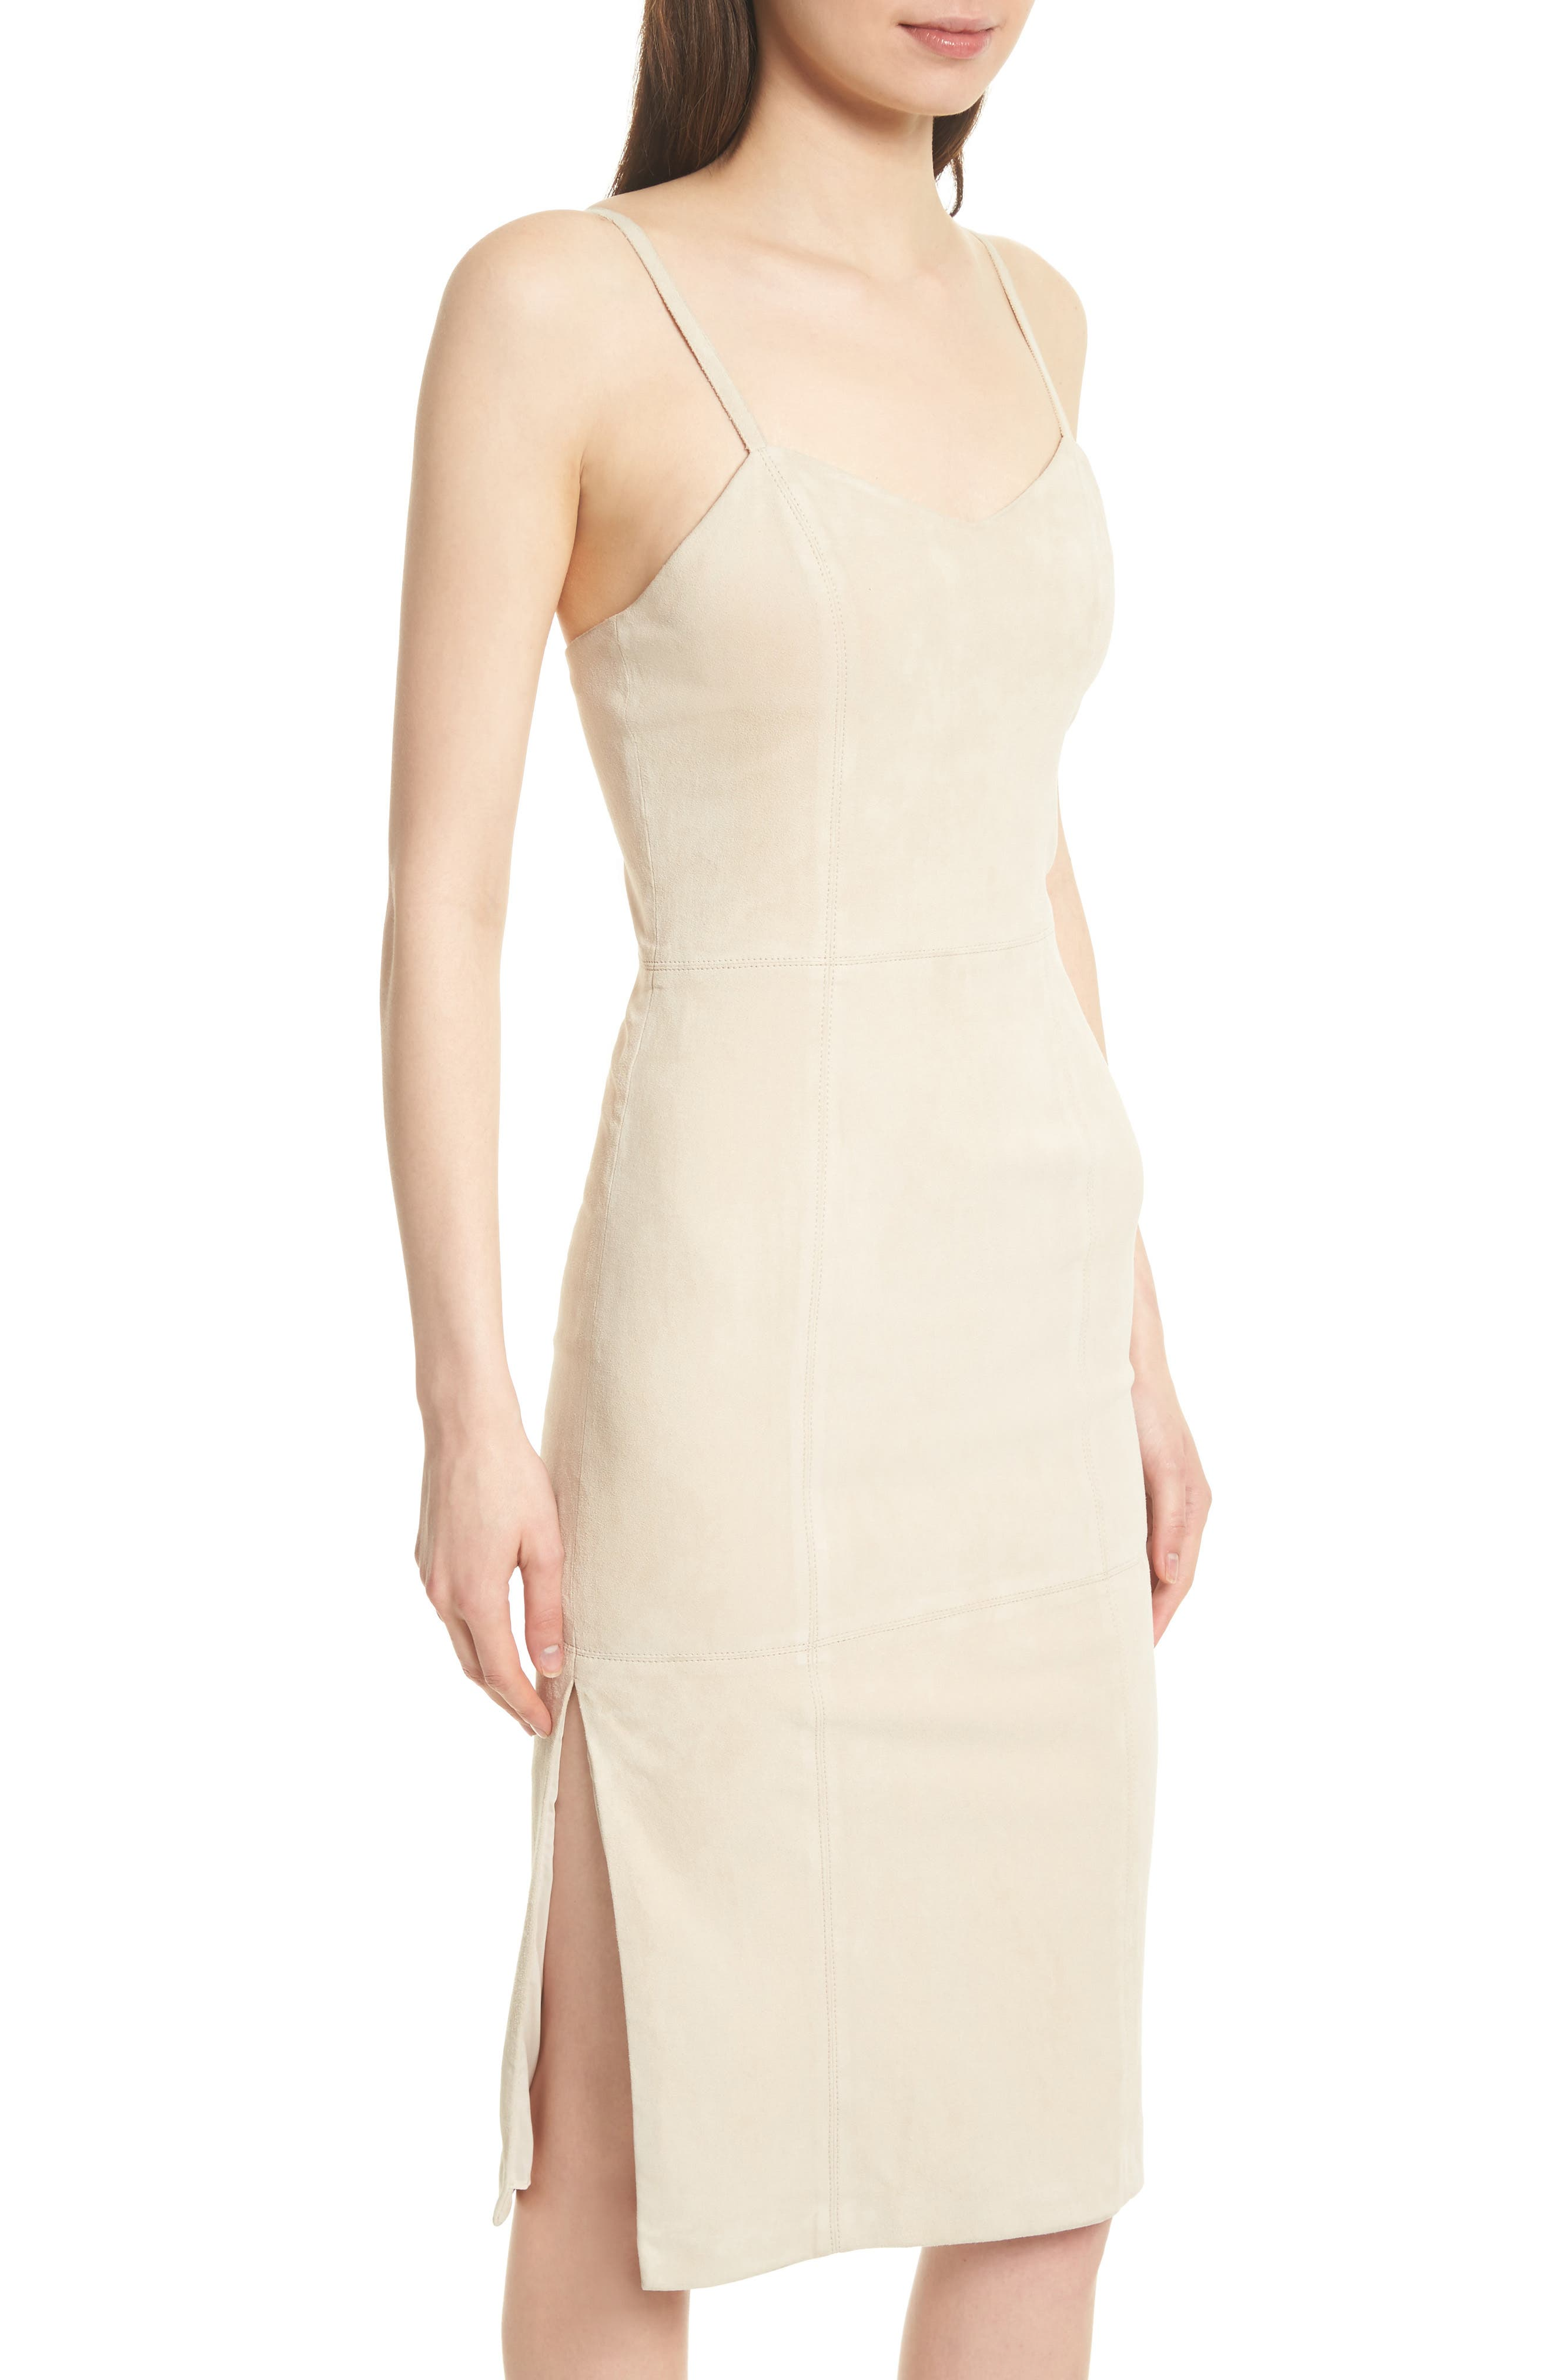 Rochell Suede Sheath Dress,                             Alternate thumbnail 4, color,                             199